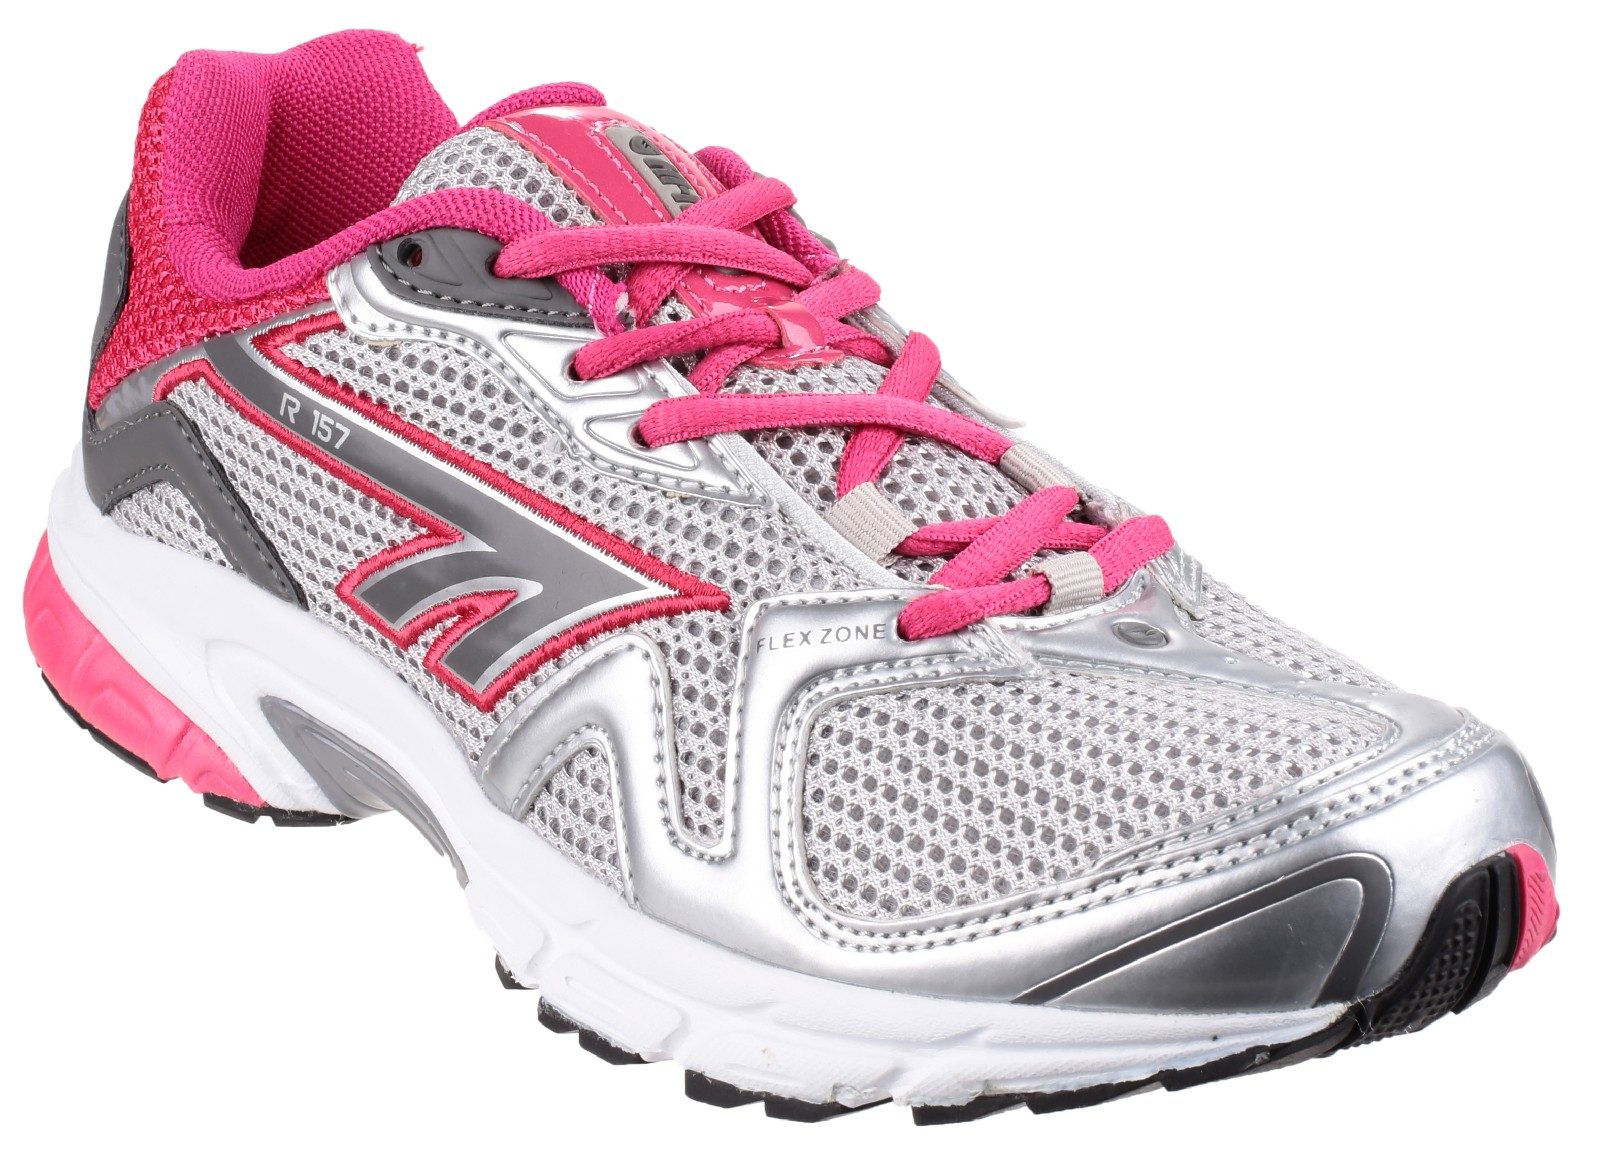 33ccd88bb5b Hi-Tec R157 Reflective Womens Sports Trainer Shoes Lace-Up Jogging Running  Gym